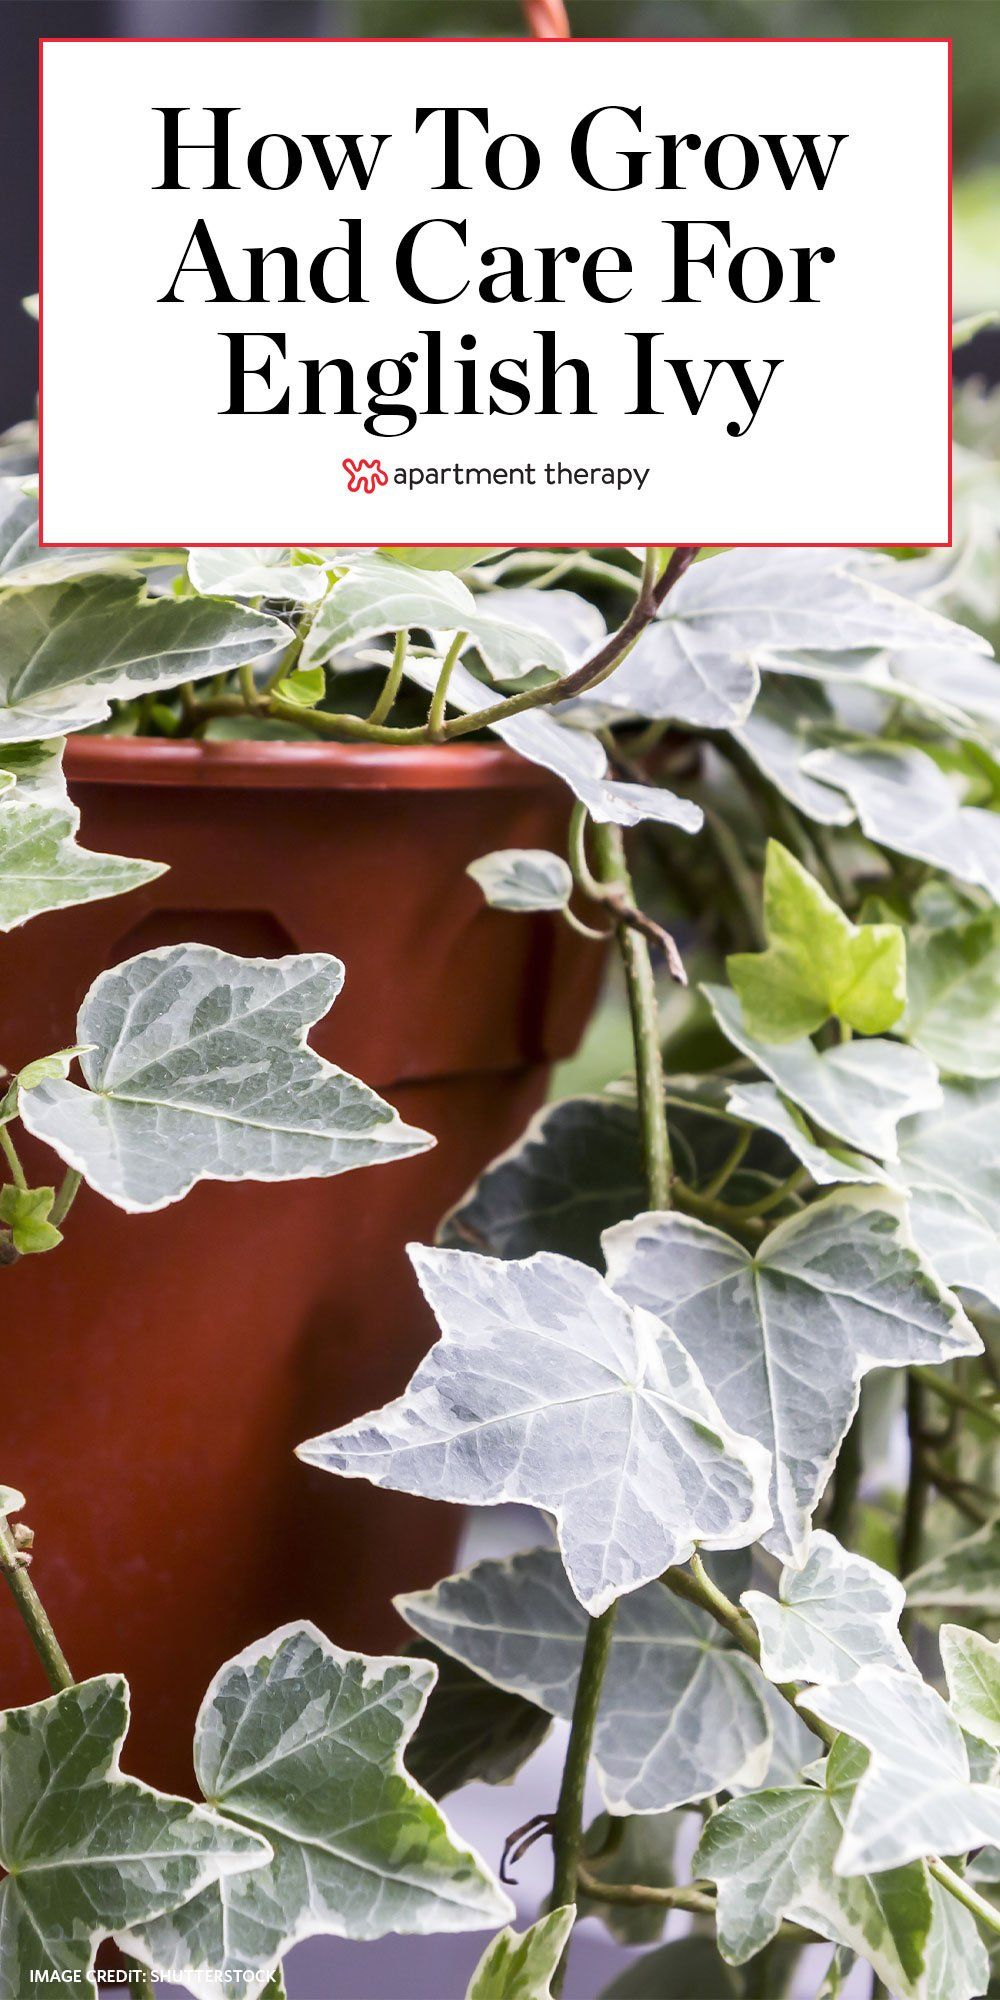 Lush & lively English Ivy is a low-maintenance plant parent's dream. Here's how to grow and care for it. #englishivy #englishivycare #englishivytips #ivy #ivyplants #ivycare #ivytips #planttips #houseplants #hangingplants #lowmaintenanceplants